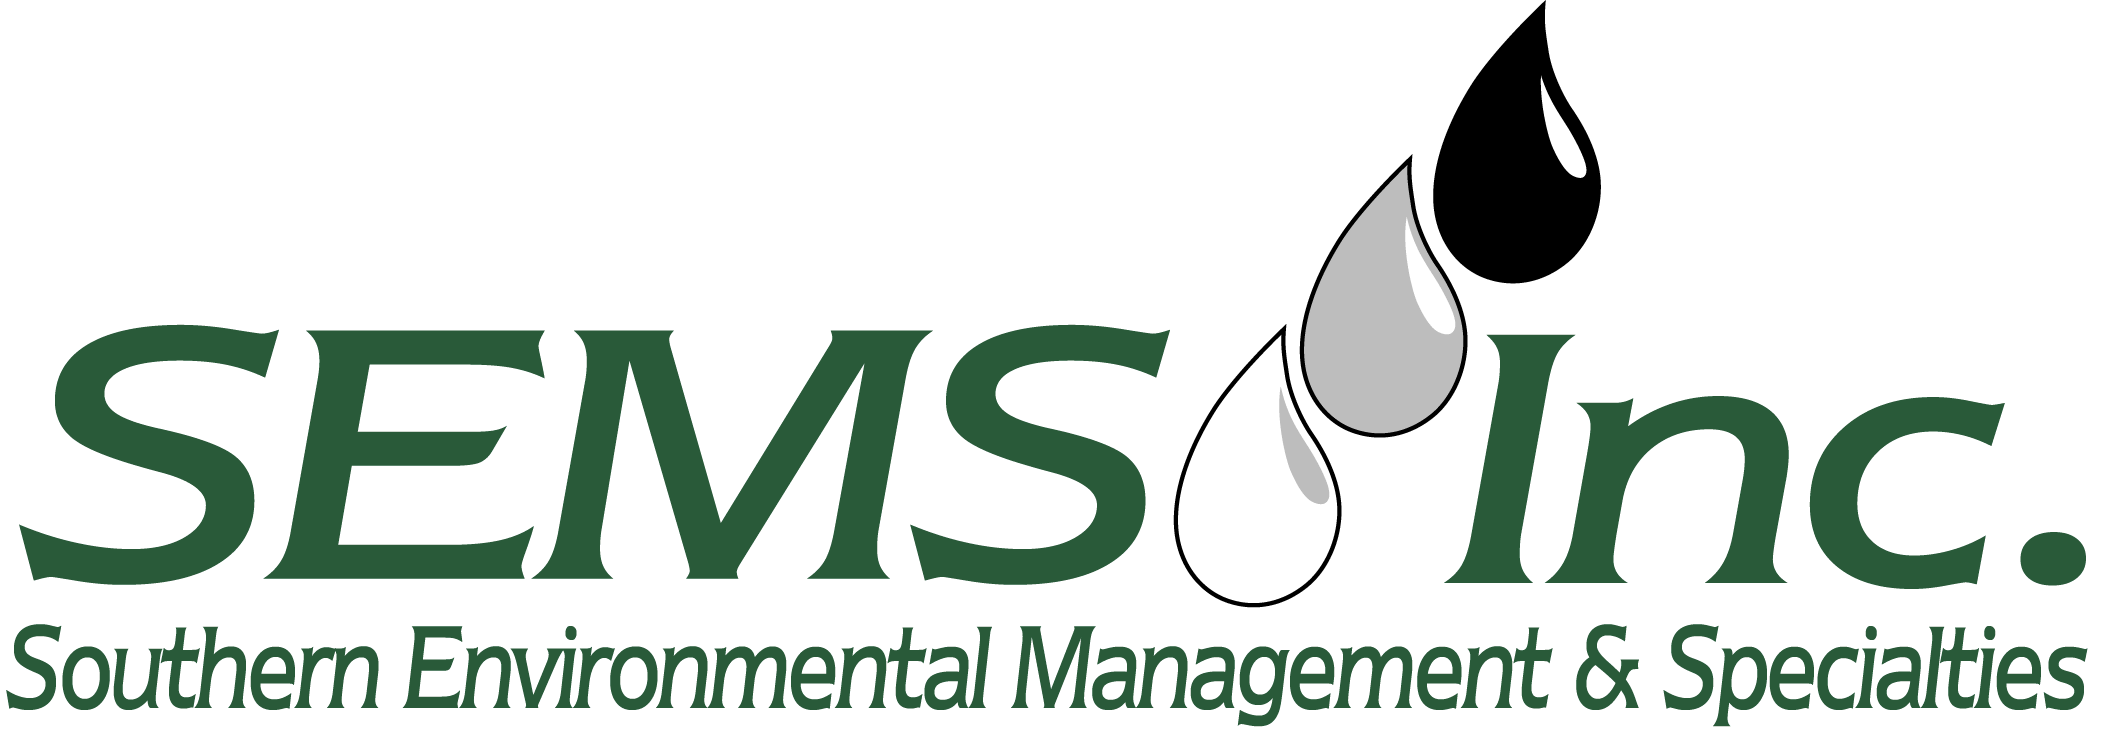 Southern Environmental Management